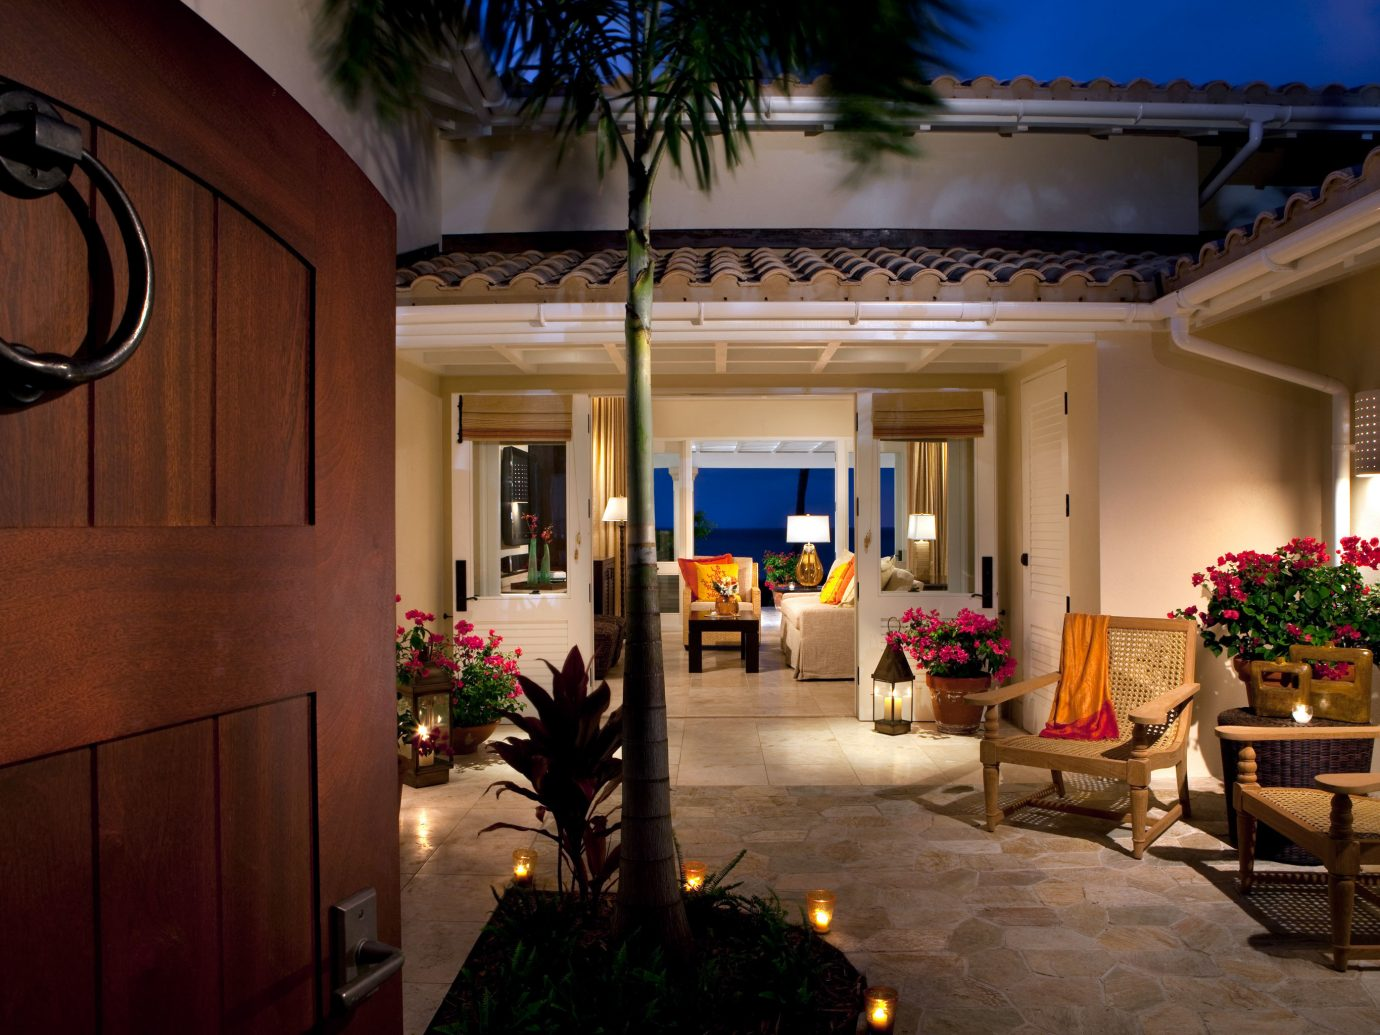 All-inclusive Beach Beachfront Bedroom Courtyard Elegant Hotels Island Luxury Patio Suite Waterfront indoor Lobby home room estate plant house living room interior design mansion lighting decorated Villa furniture